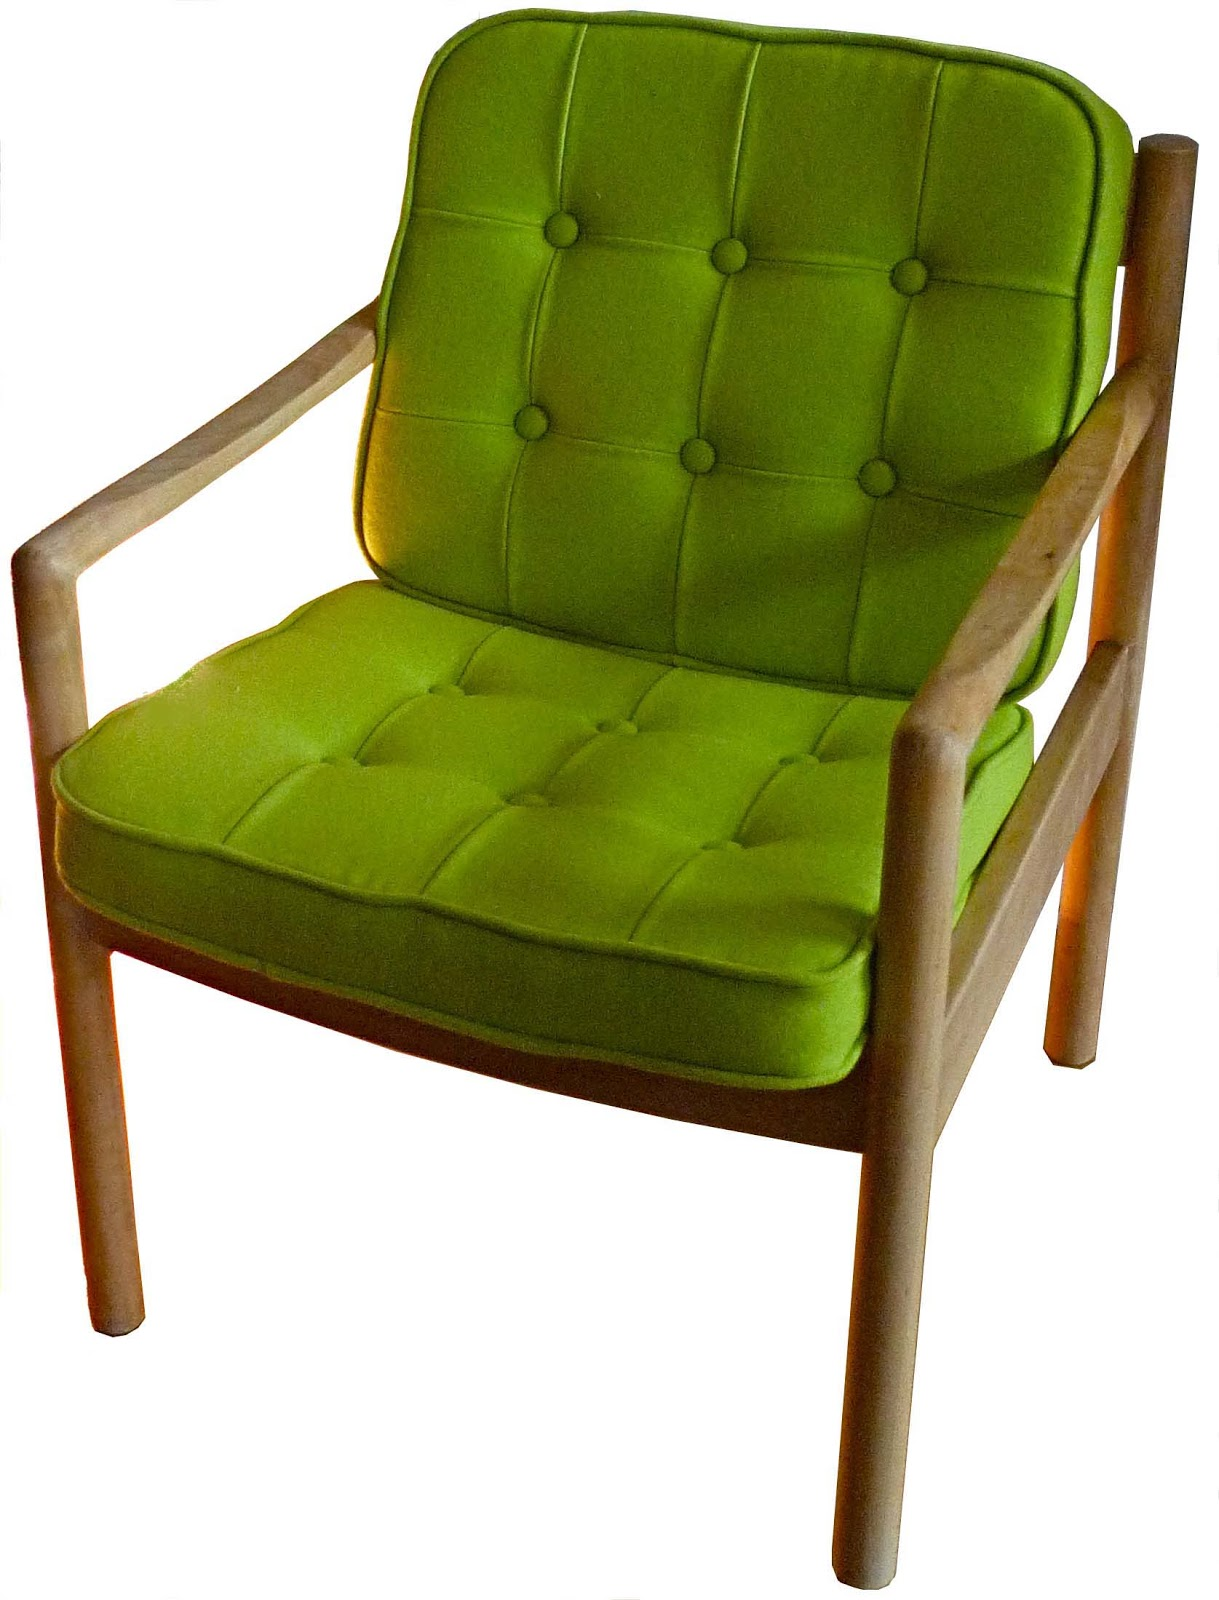 JO PRICE UPHOLSTERY + DESIGN: chairs and sofas